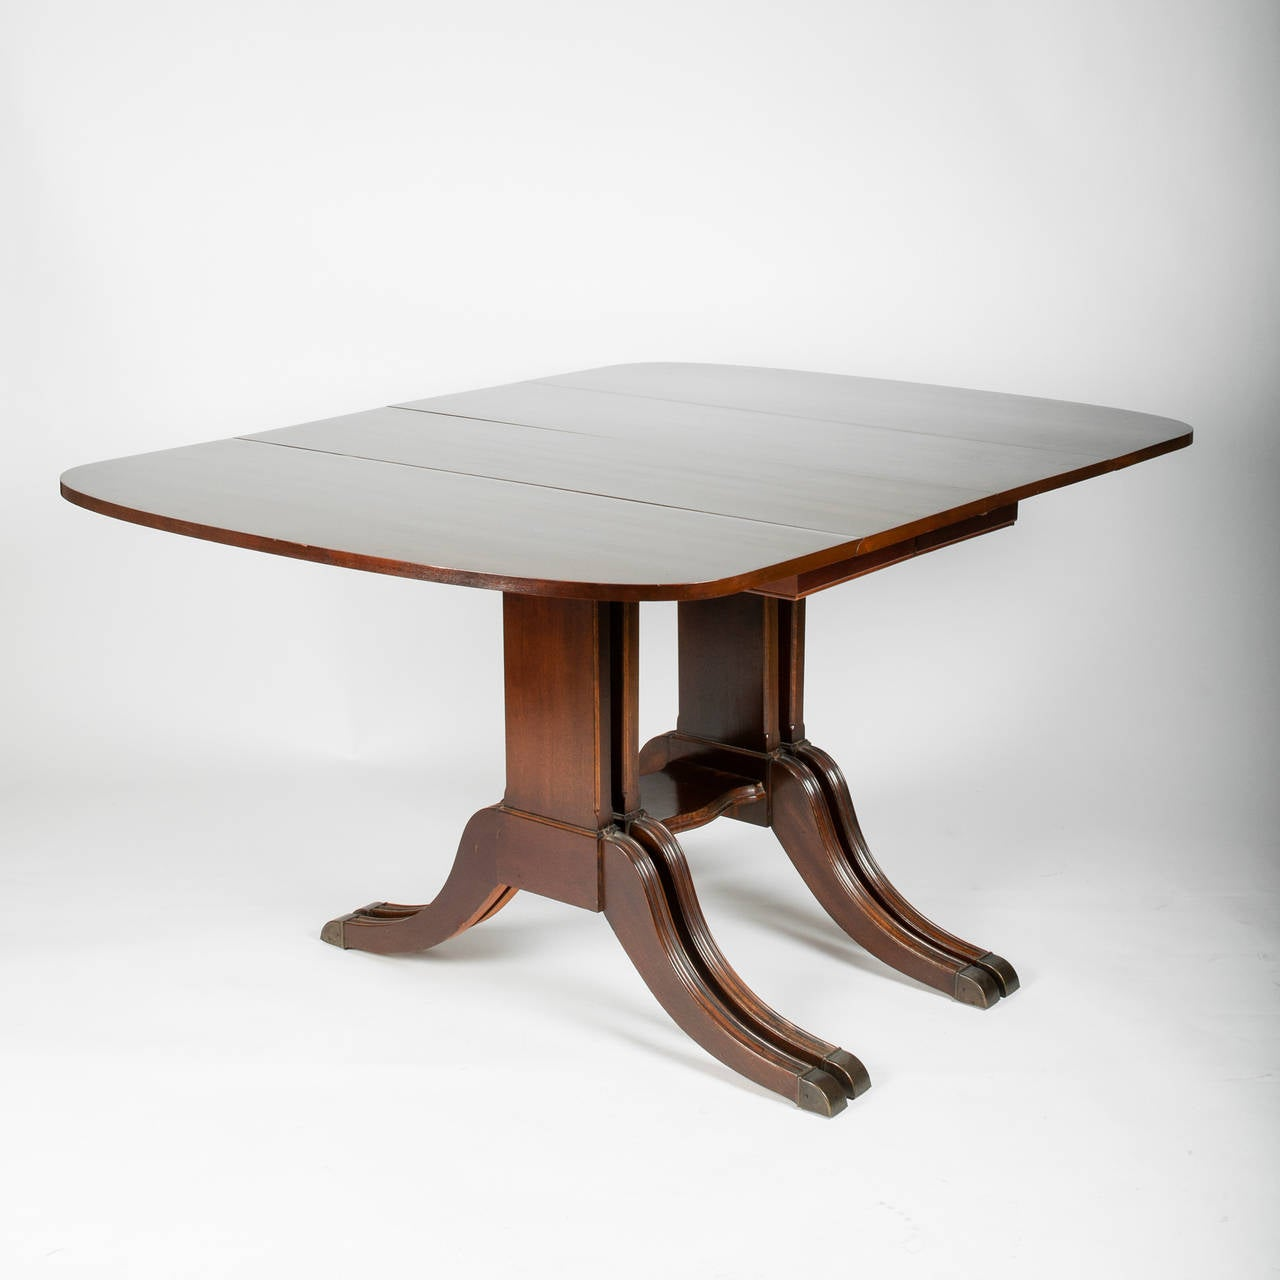 Duncan Phyfe Style Drop Leaf Extension Table For Sale at 1stdibs